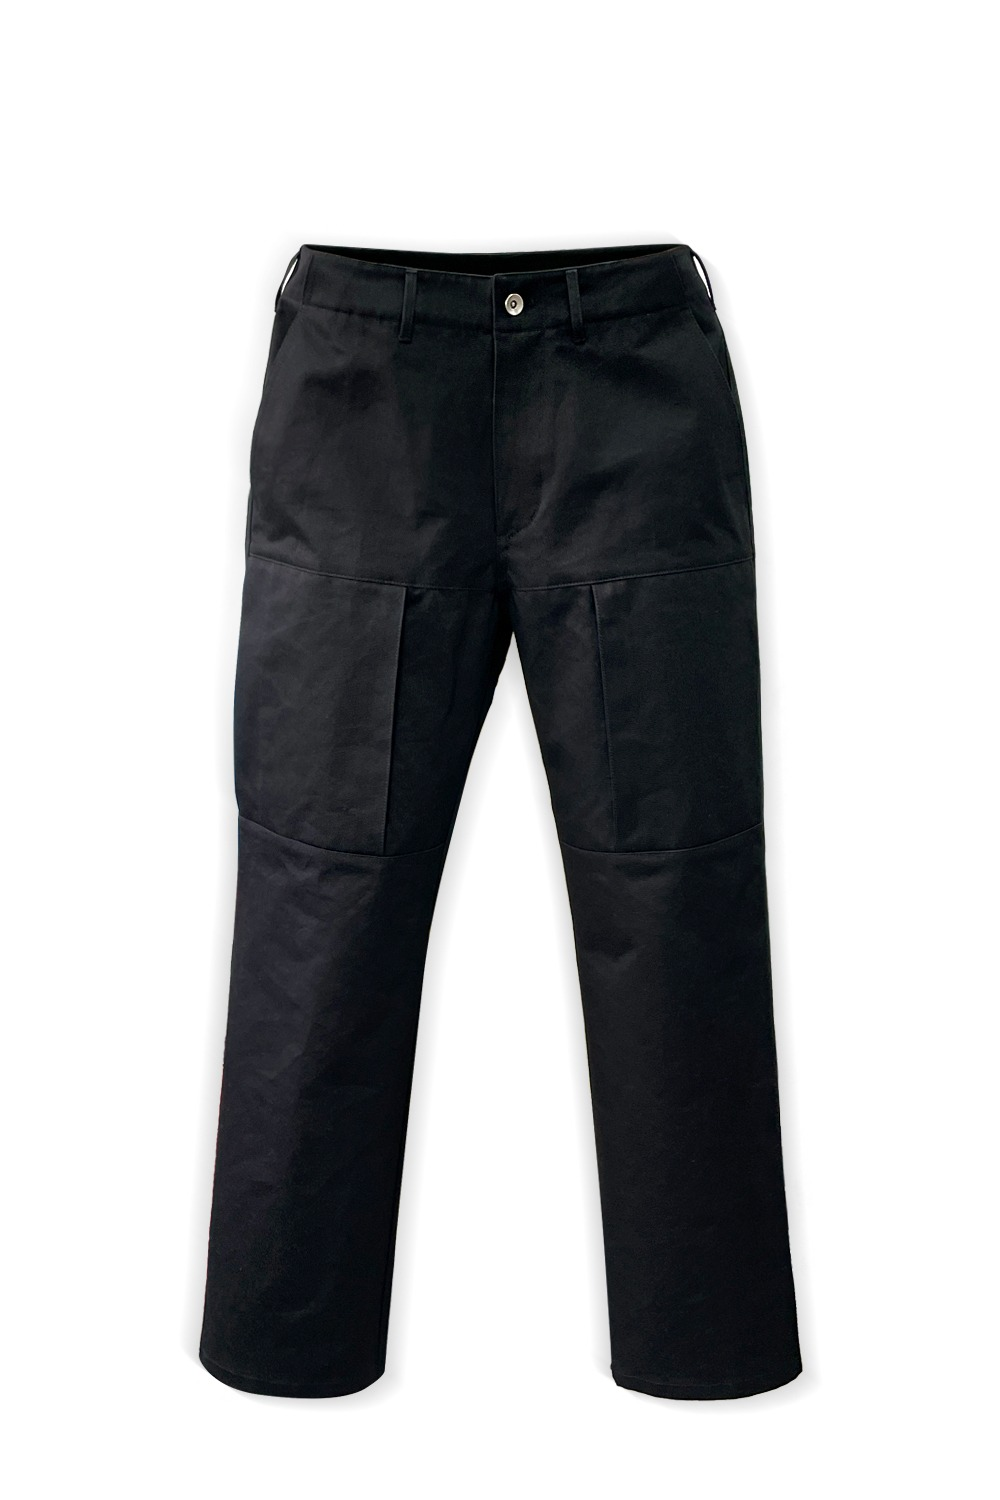 DAY / TOOL PANTS / JET-BLACK